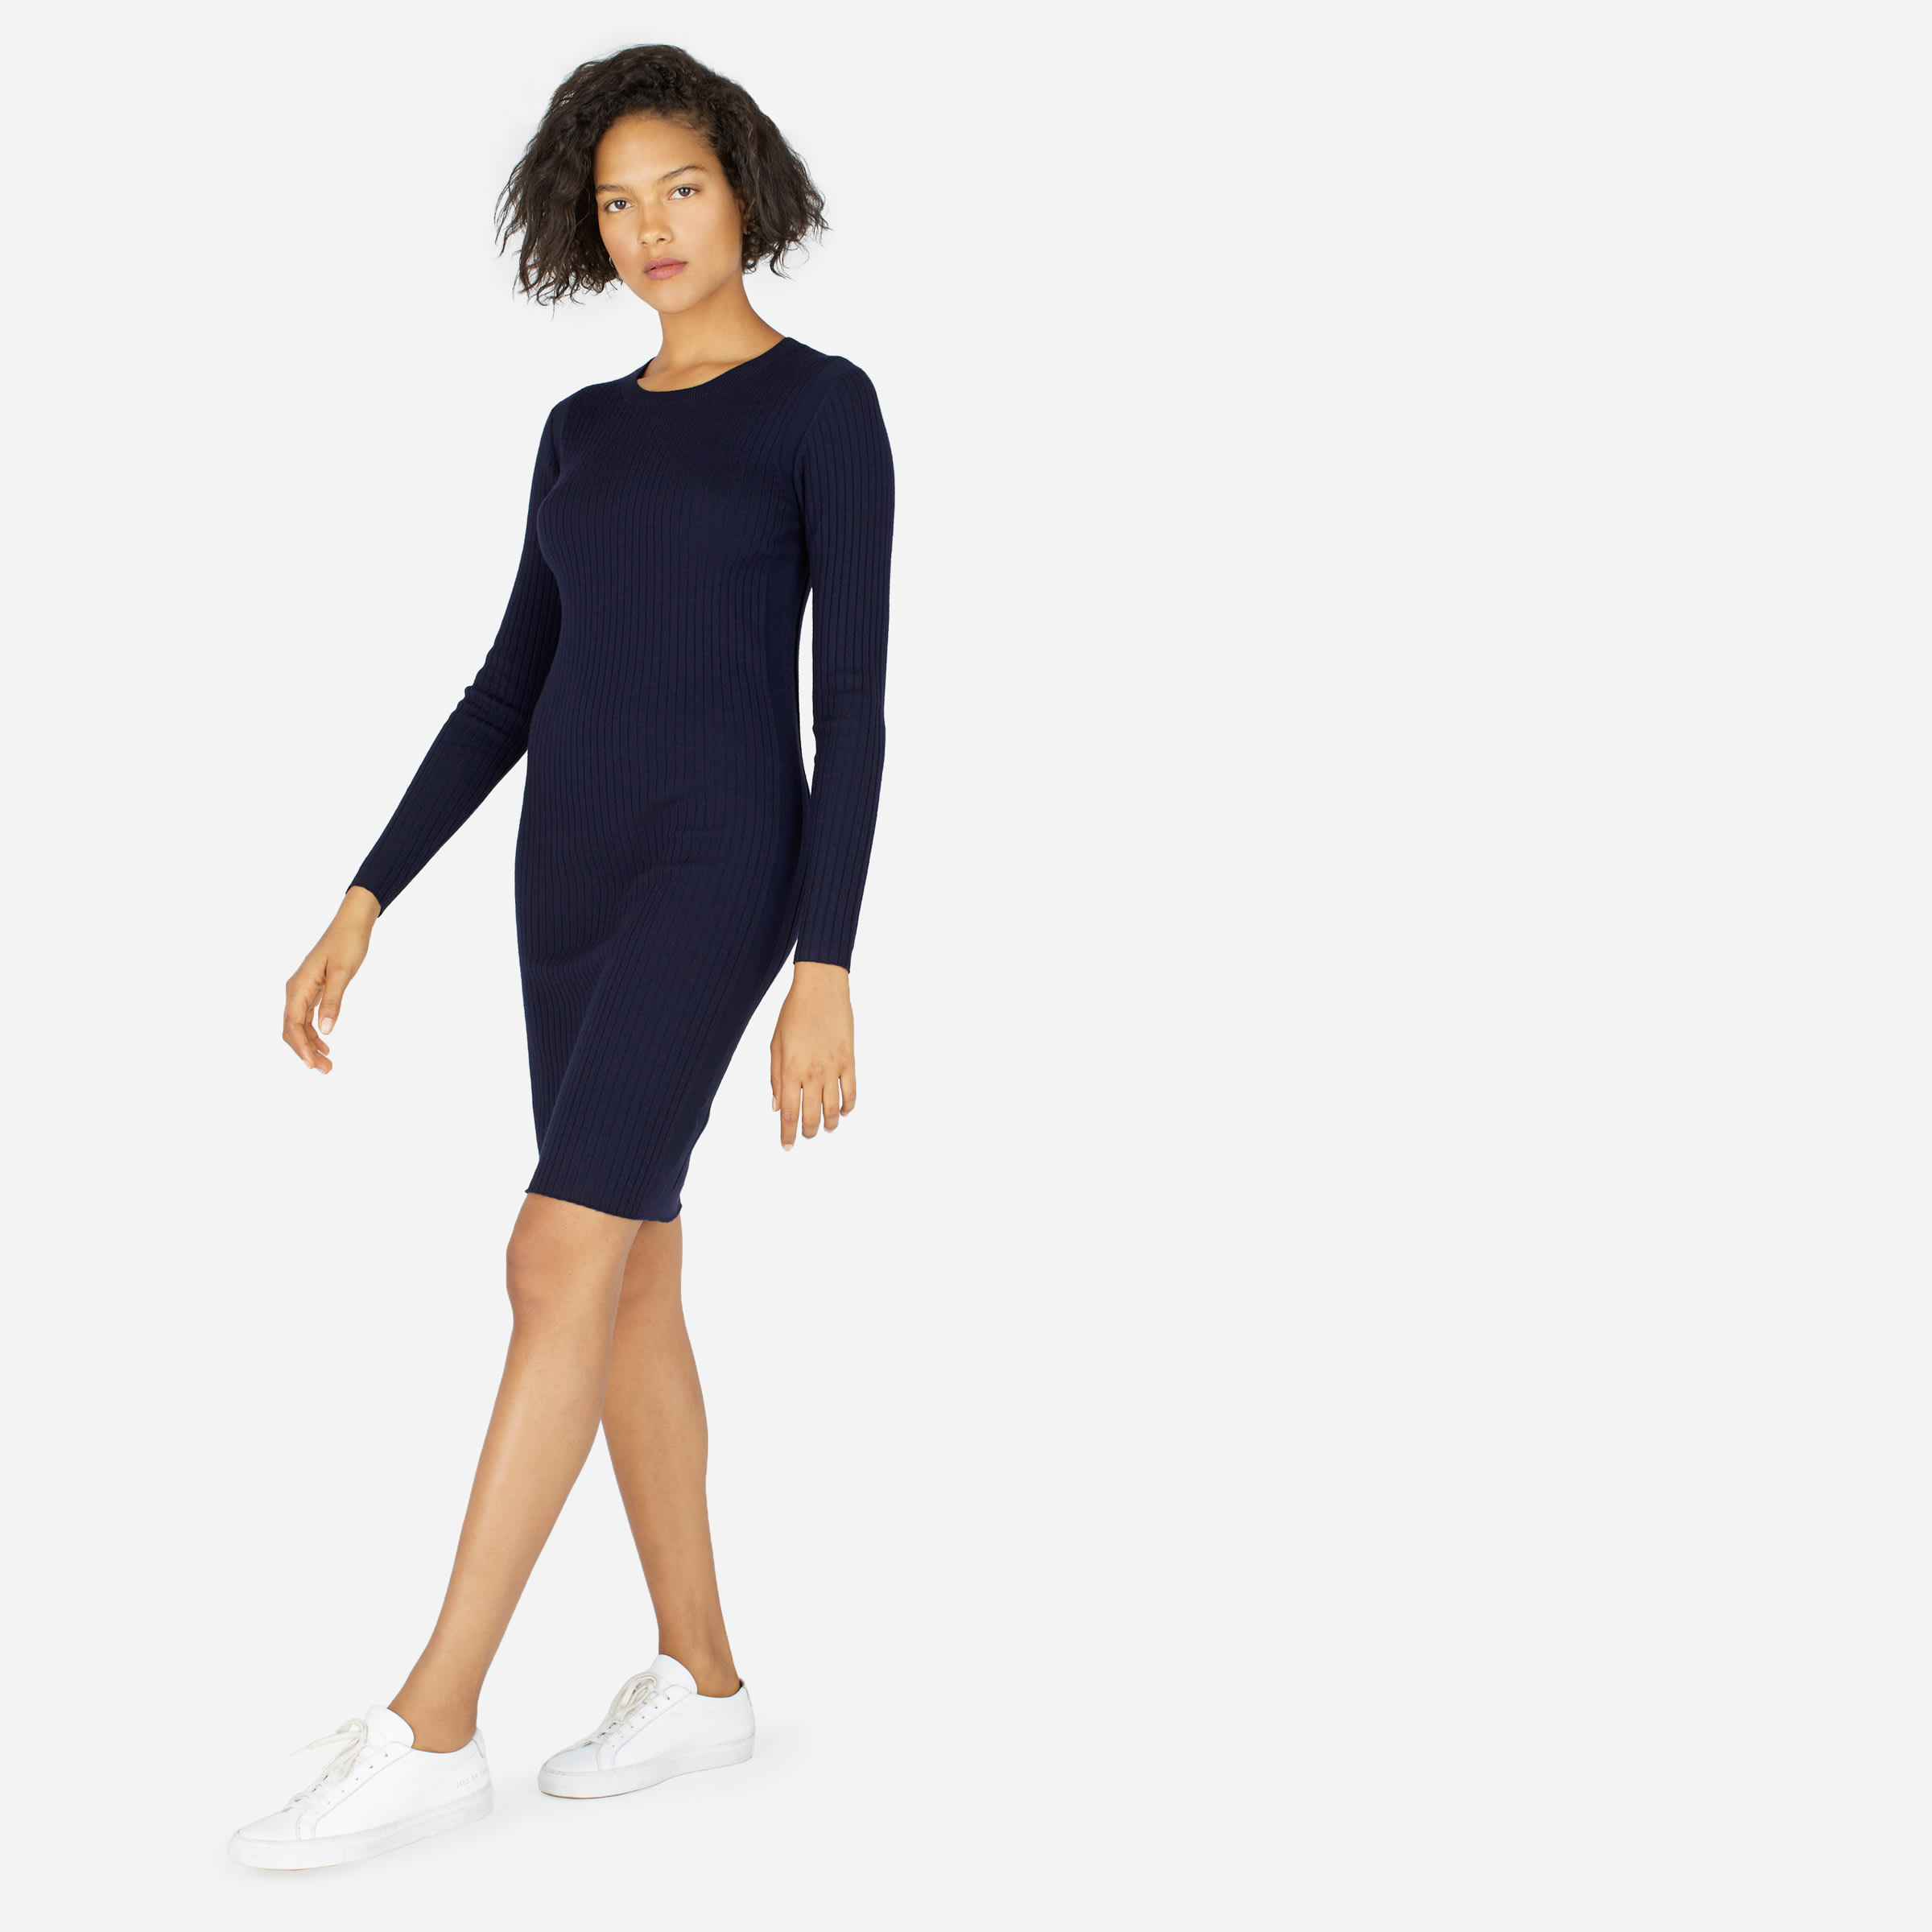 425684e9a15 The Luxe Wool Ribbed Long-Sleeve Dress —  110